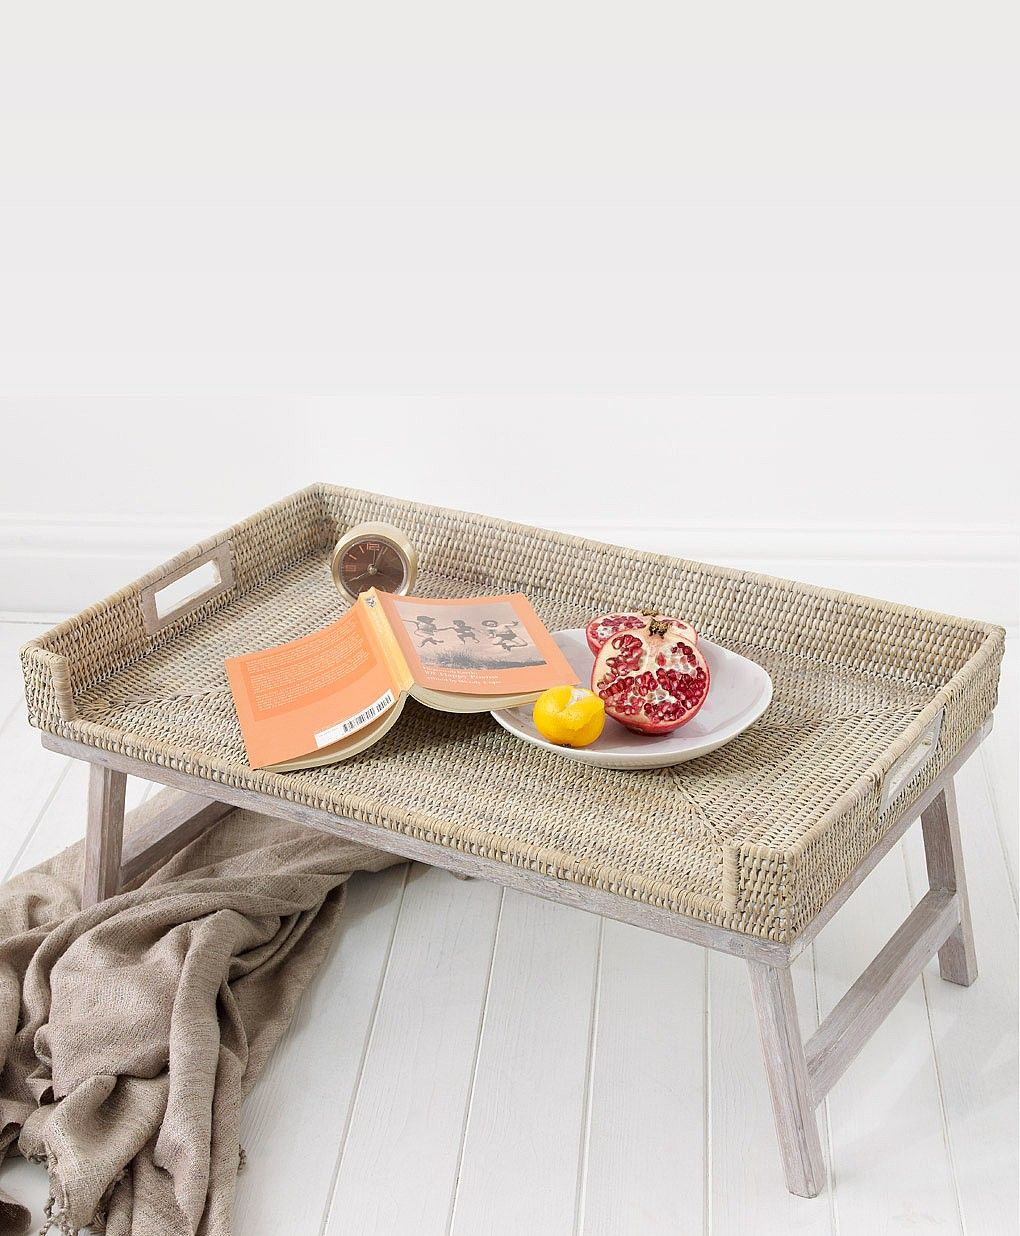 Breakfast Trays For Bed Alluring Rattan Breakfast Tray  Breakfast Tray Rattan And Trays Review